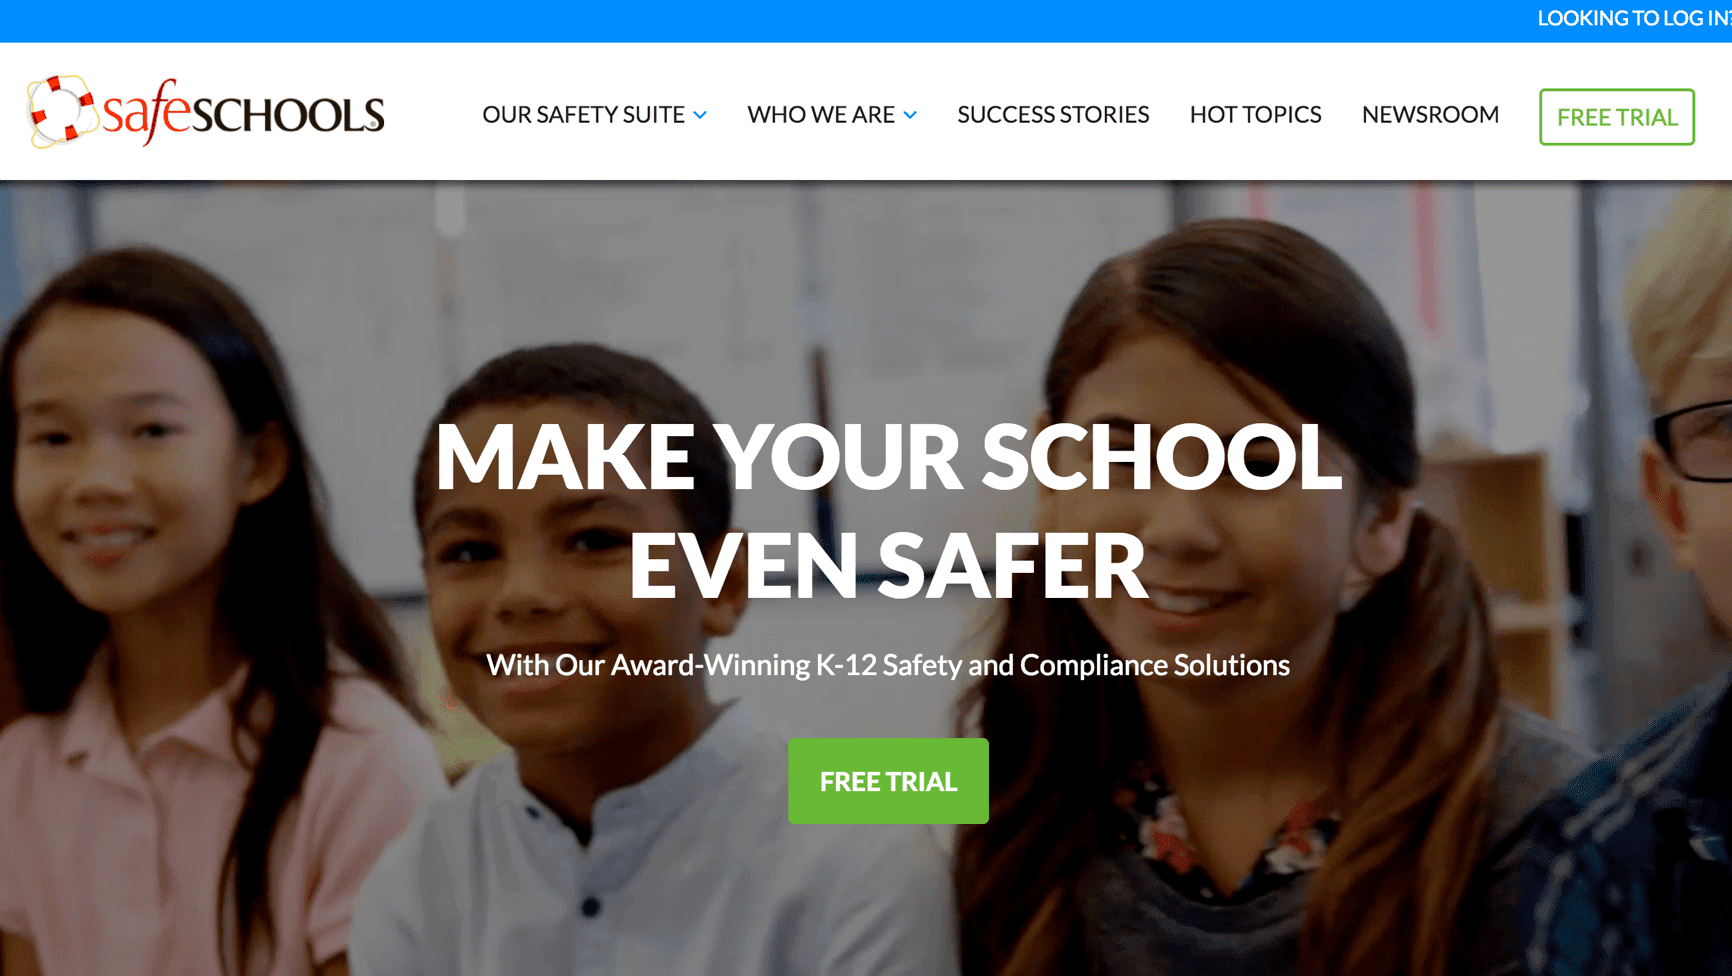 safe schools website desktop view